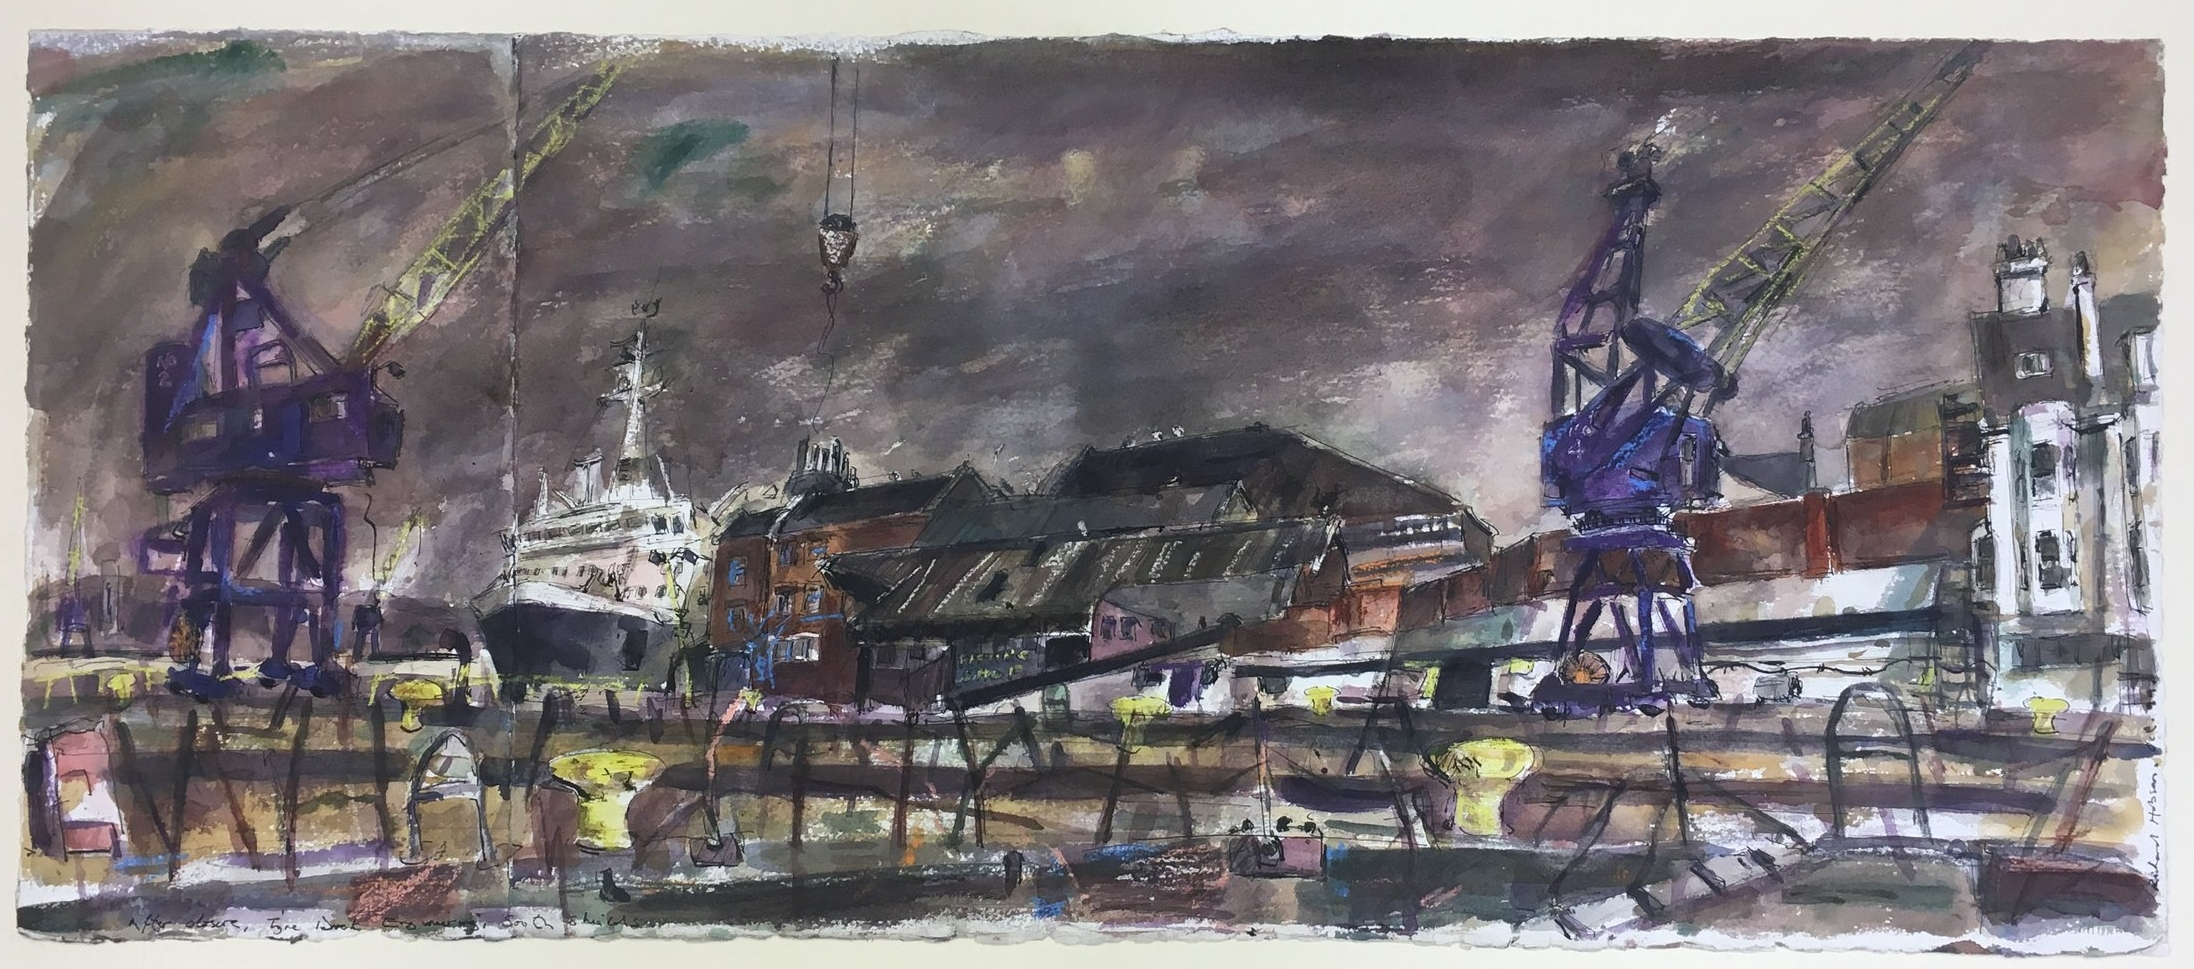 After Closure, Tyne Dock Engineering, South Shields, 1999  Ink, watercolour and pastel on paper 42.4 x 99.1cm